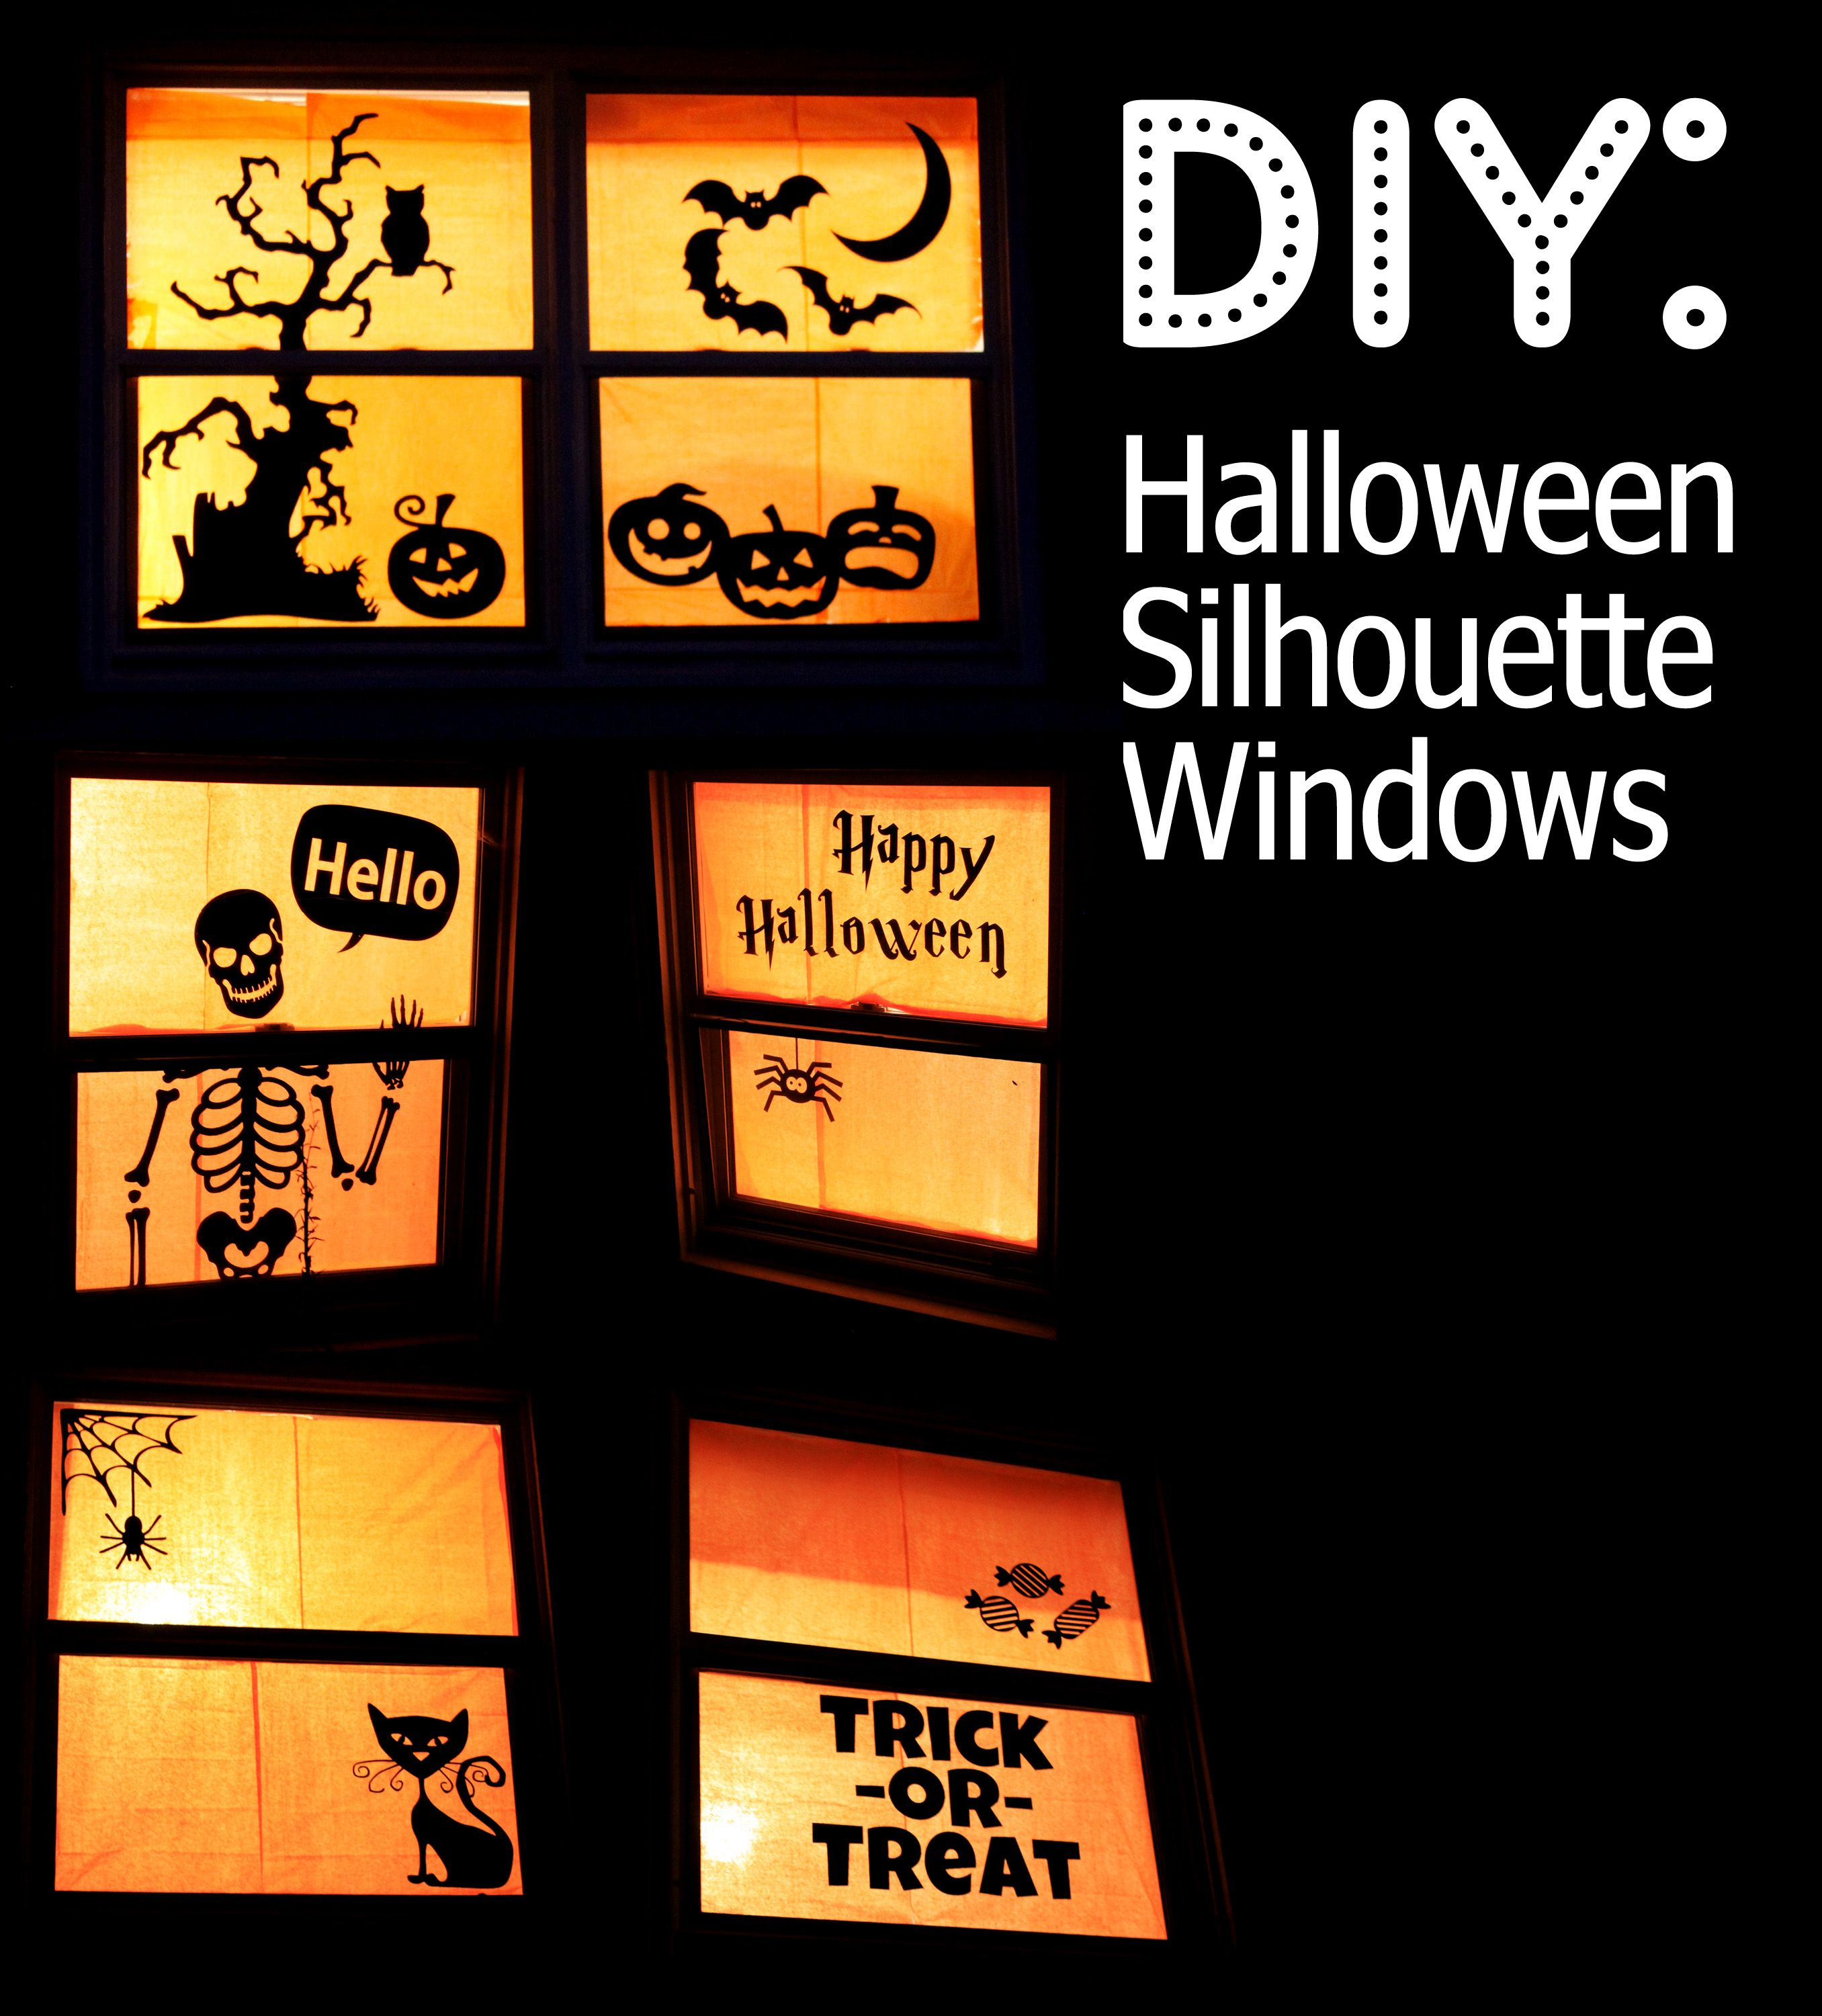 Easy homemade halloween decorations - Halloween Silhouette Windows Diy I Need Me Some Construction Paper